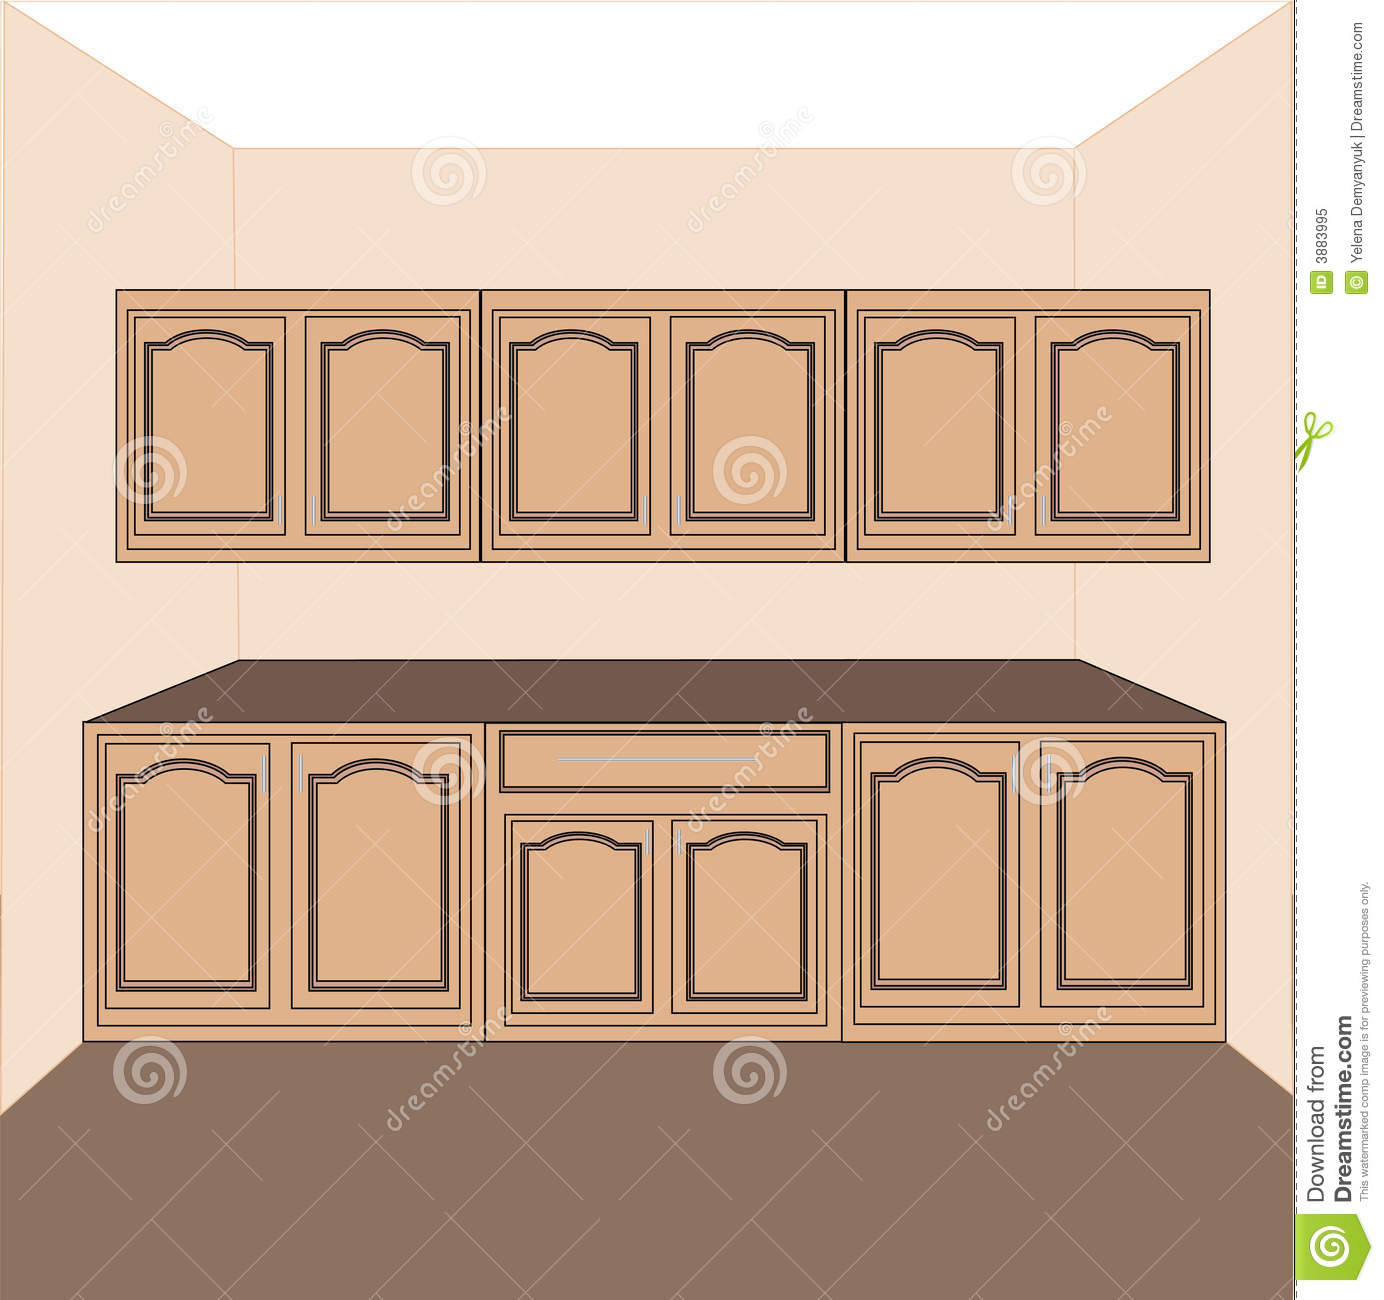 Kitchen Cabinet Clipart